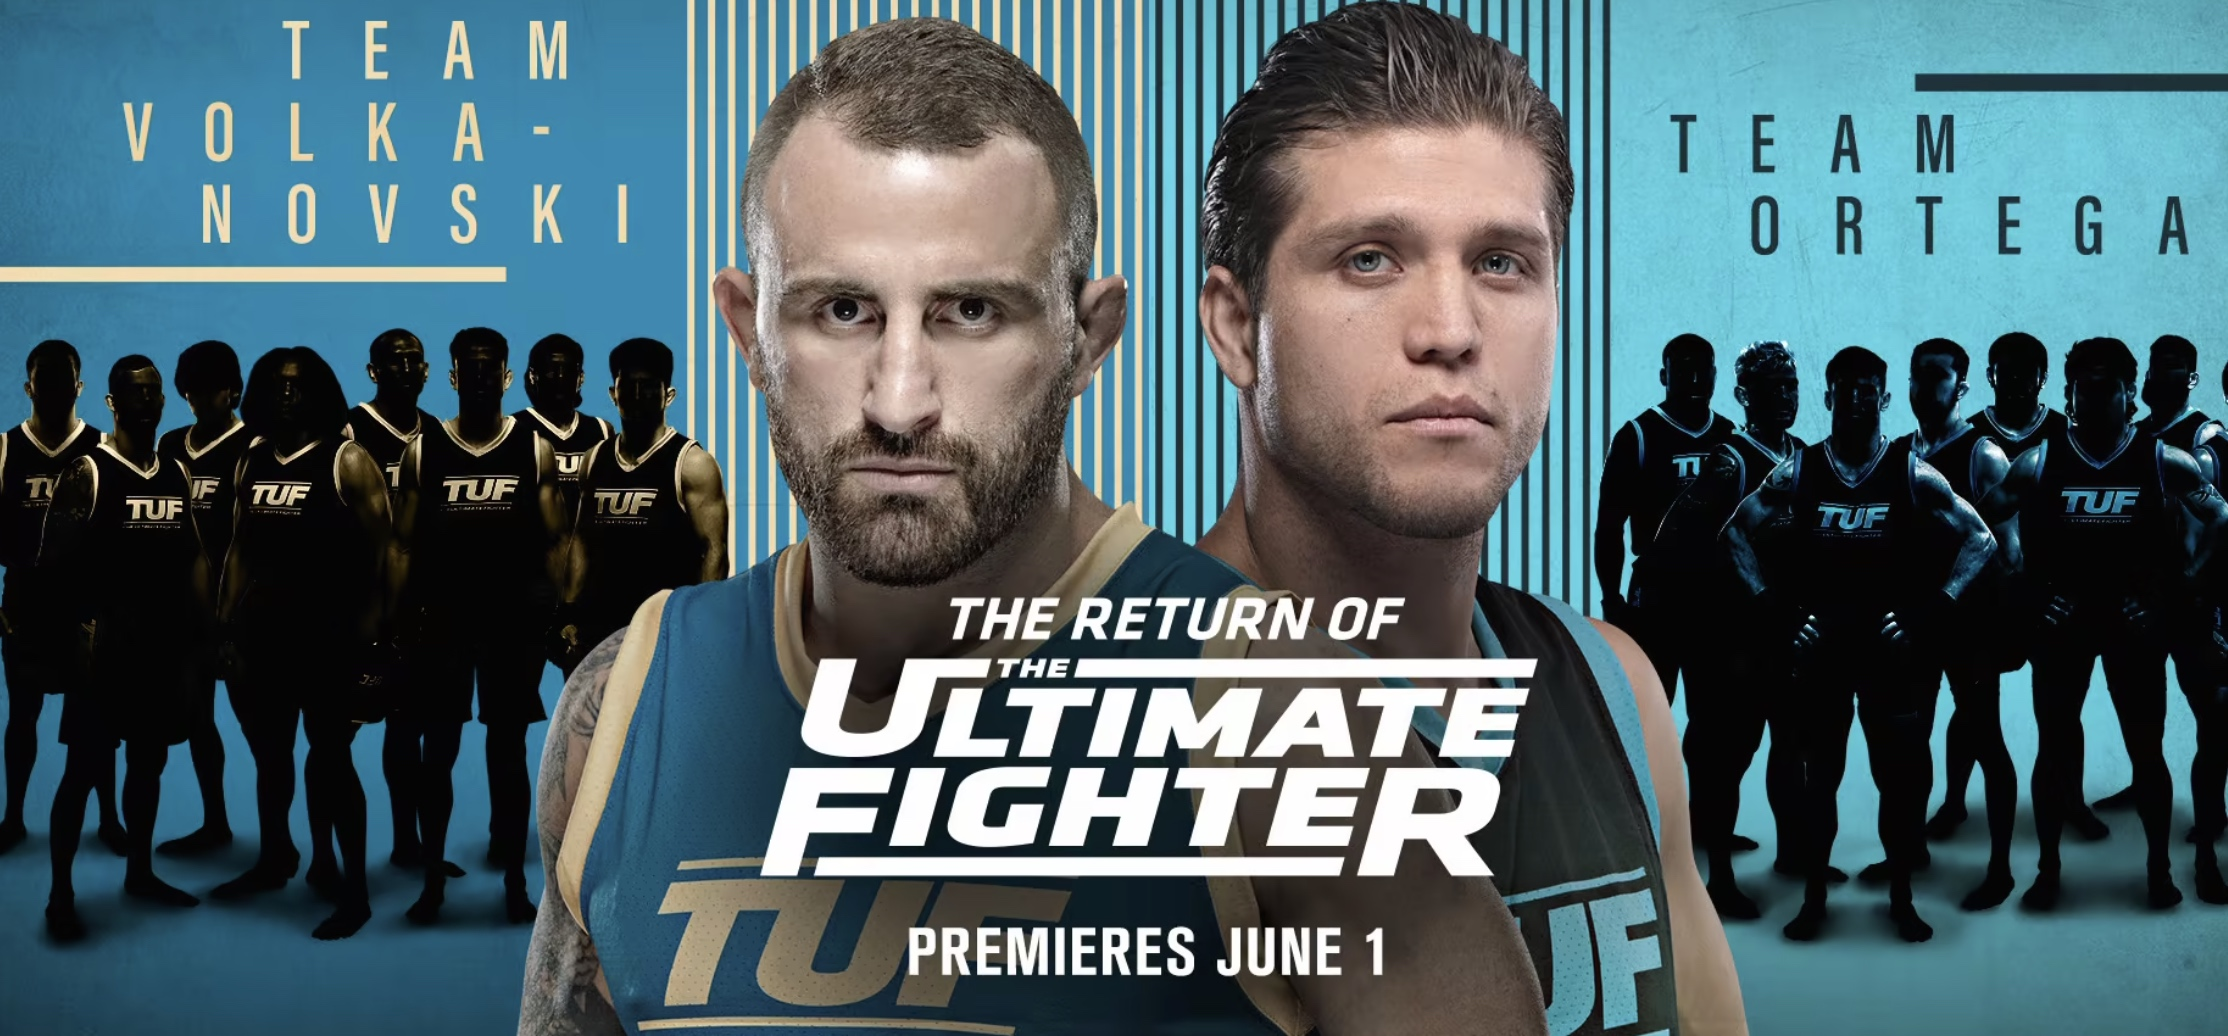 The Ultimate Fighter 29 promo